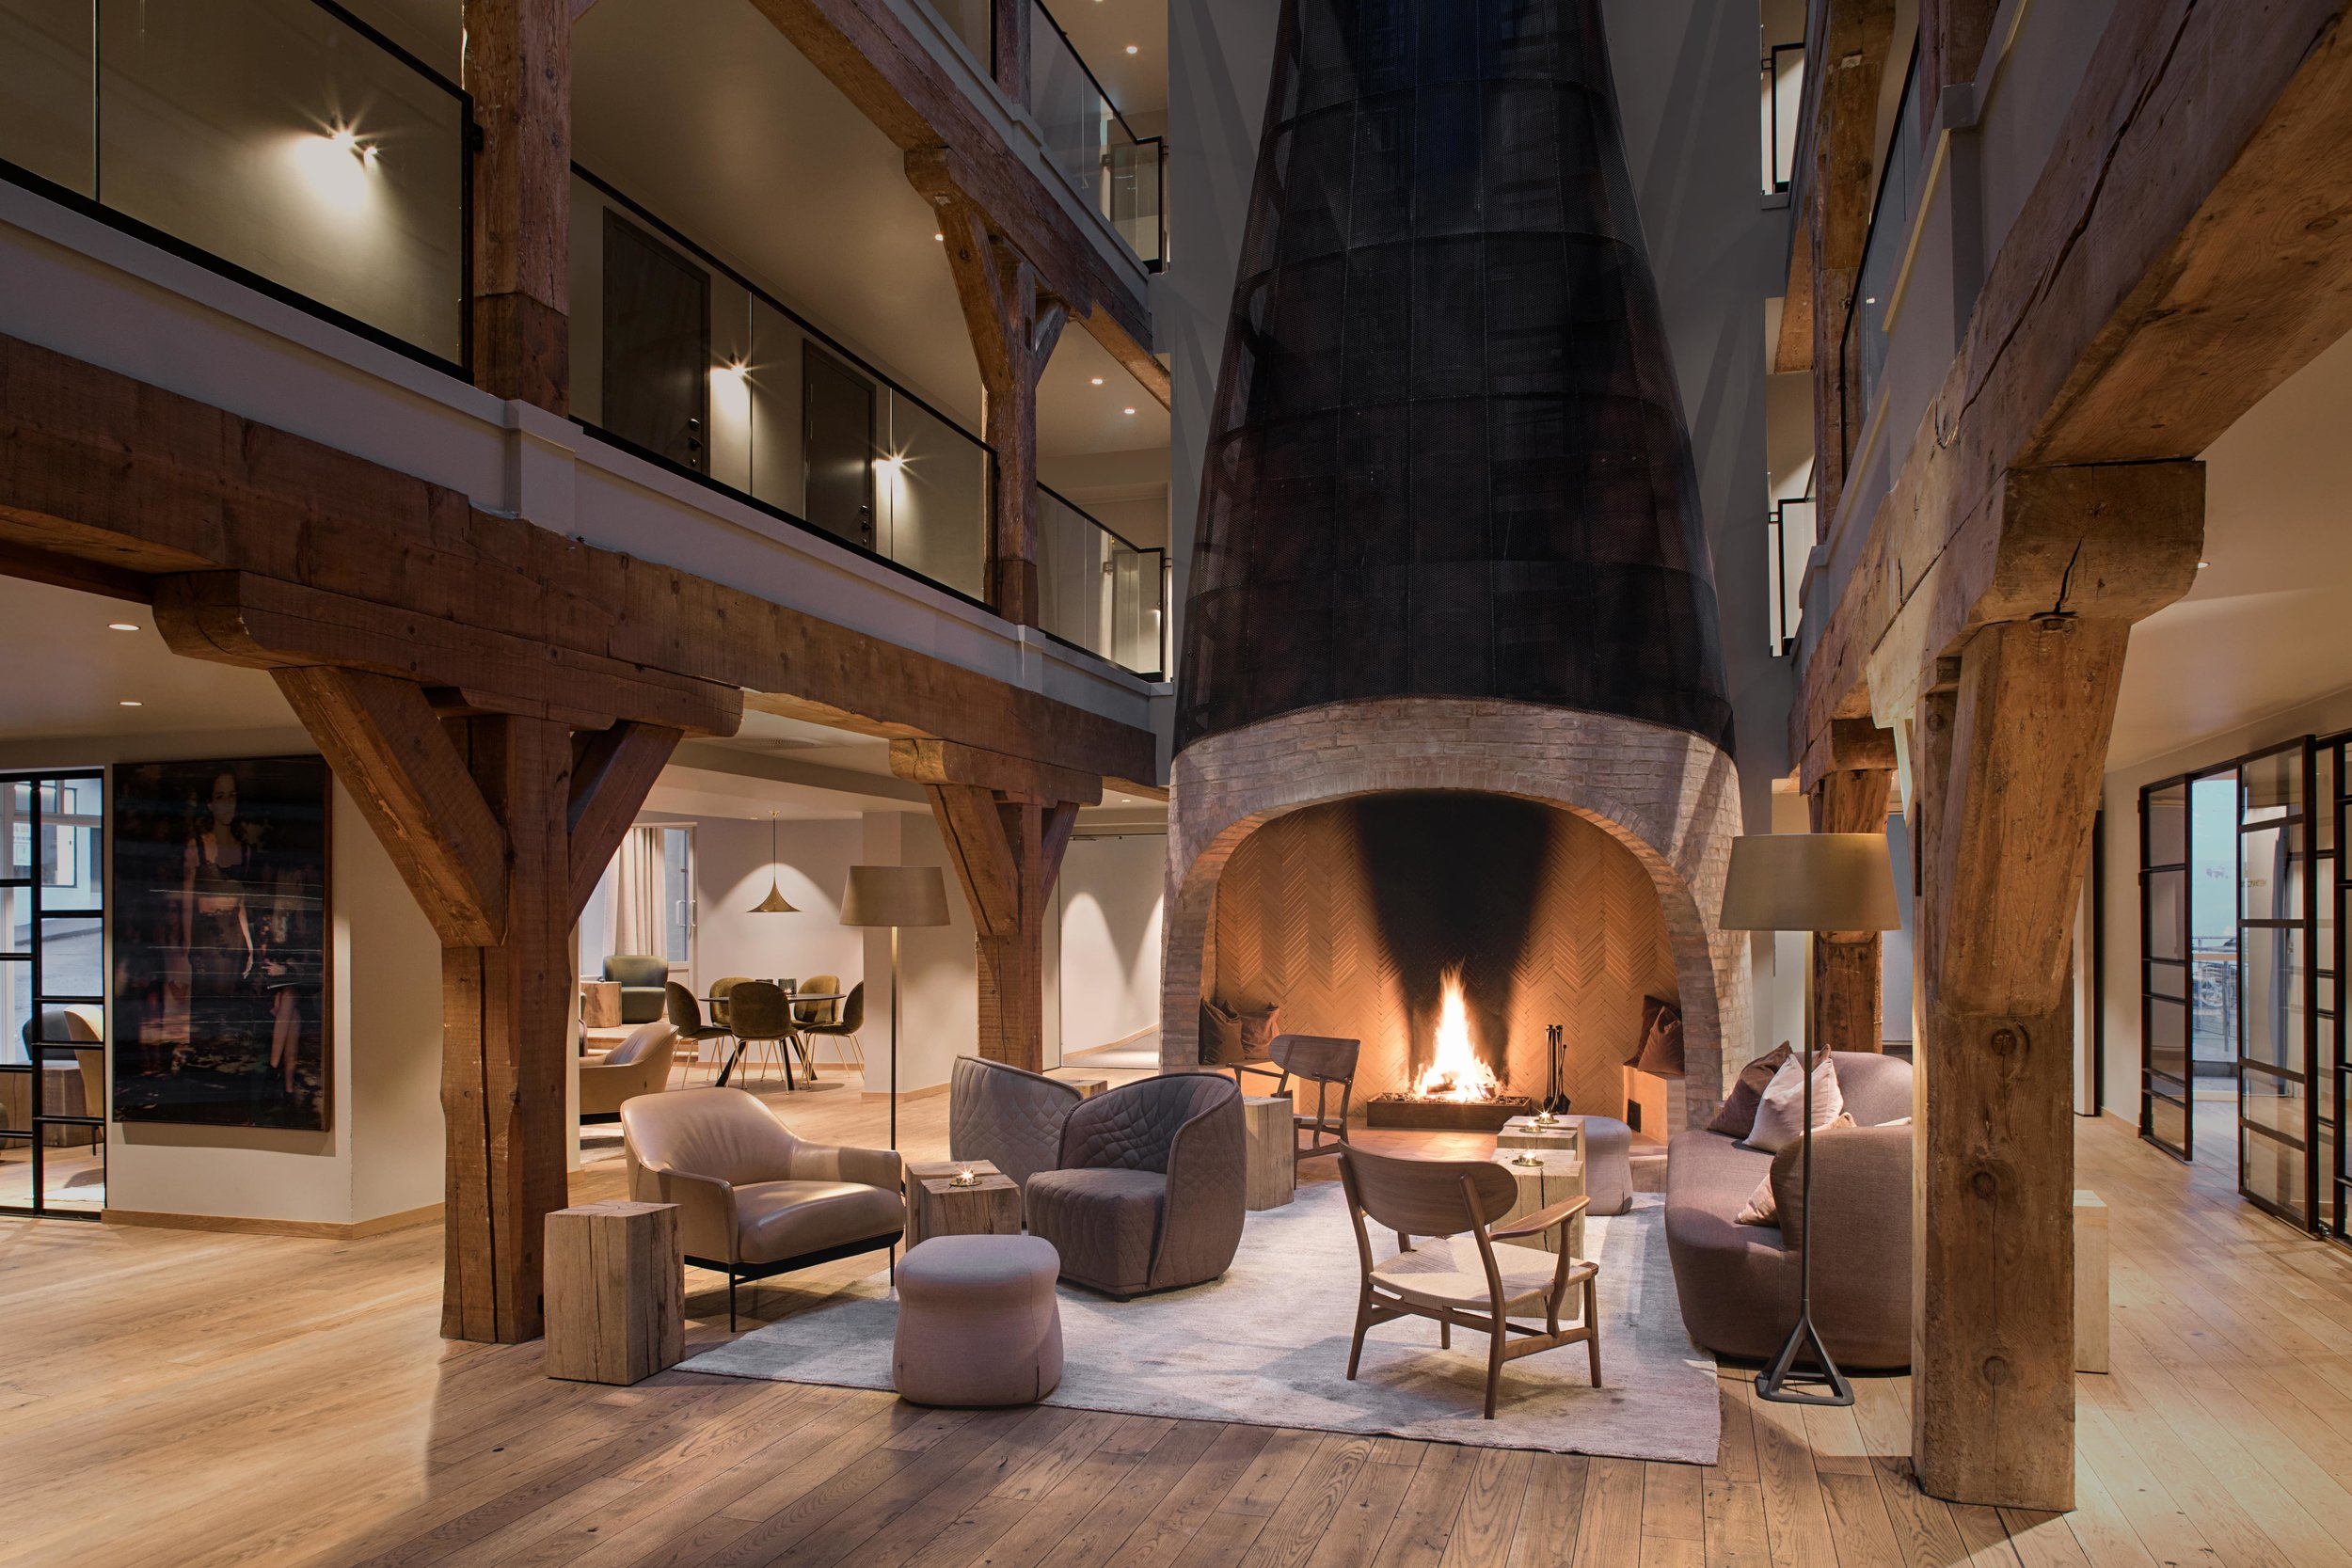 Hotel Brosundet Ålesund Norway, lobby with architect drawn fireplace by GARDE. Mads Emil Garde